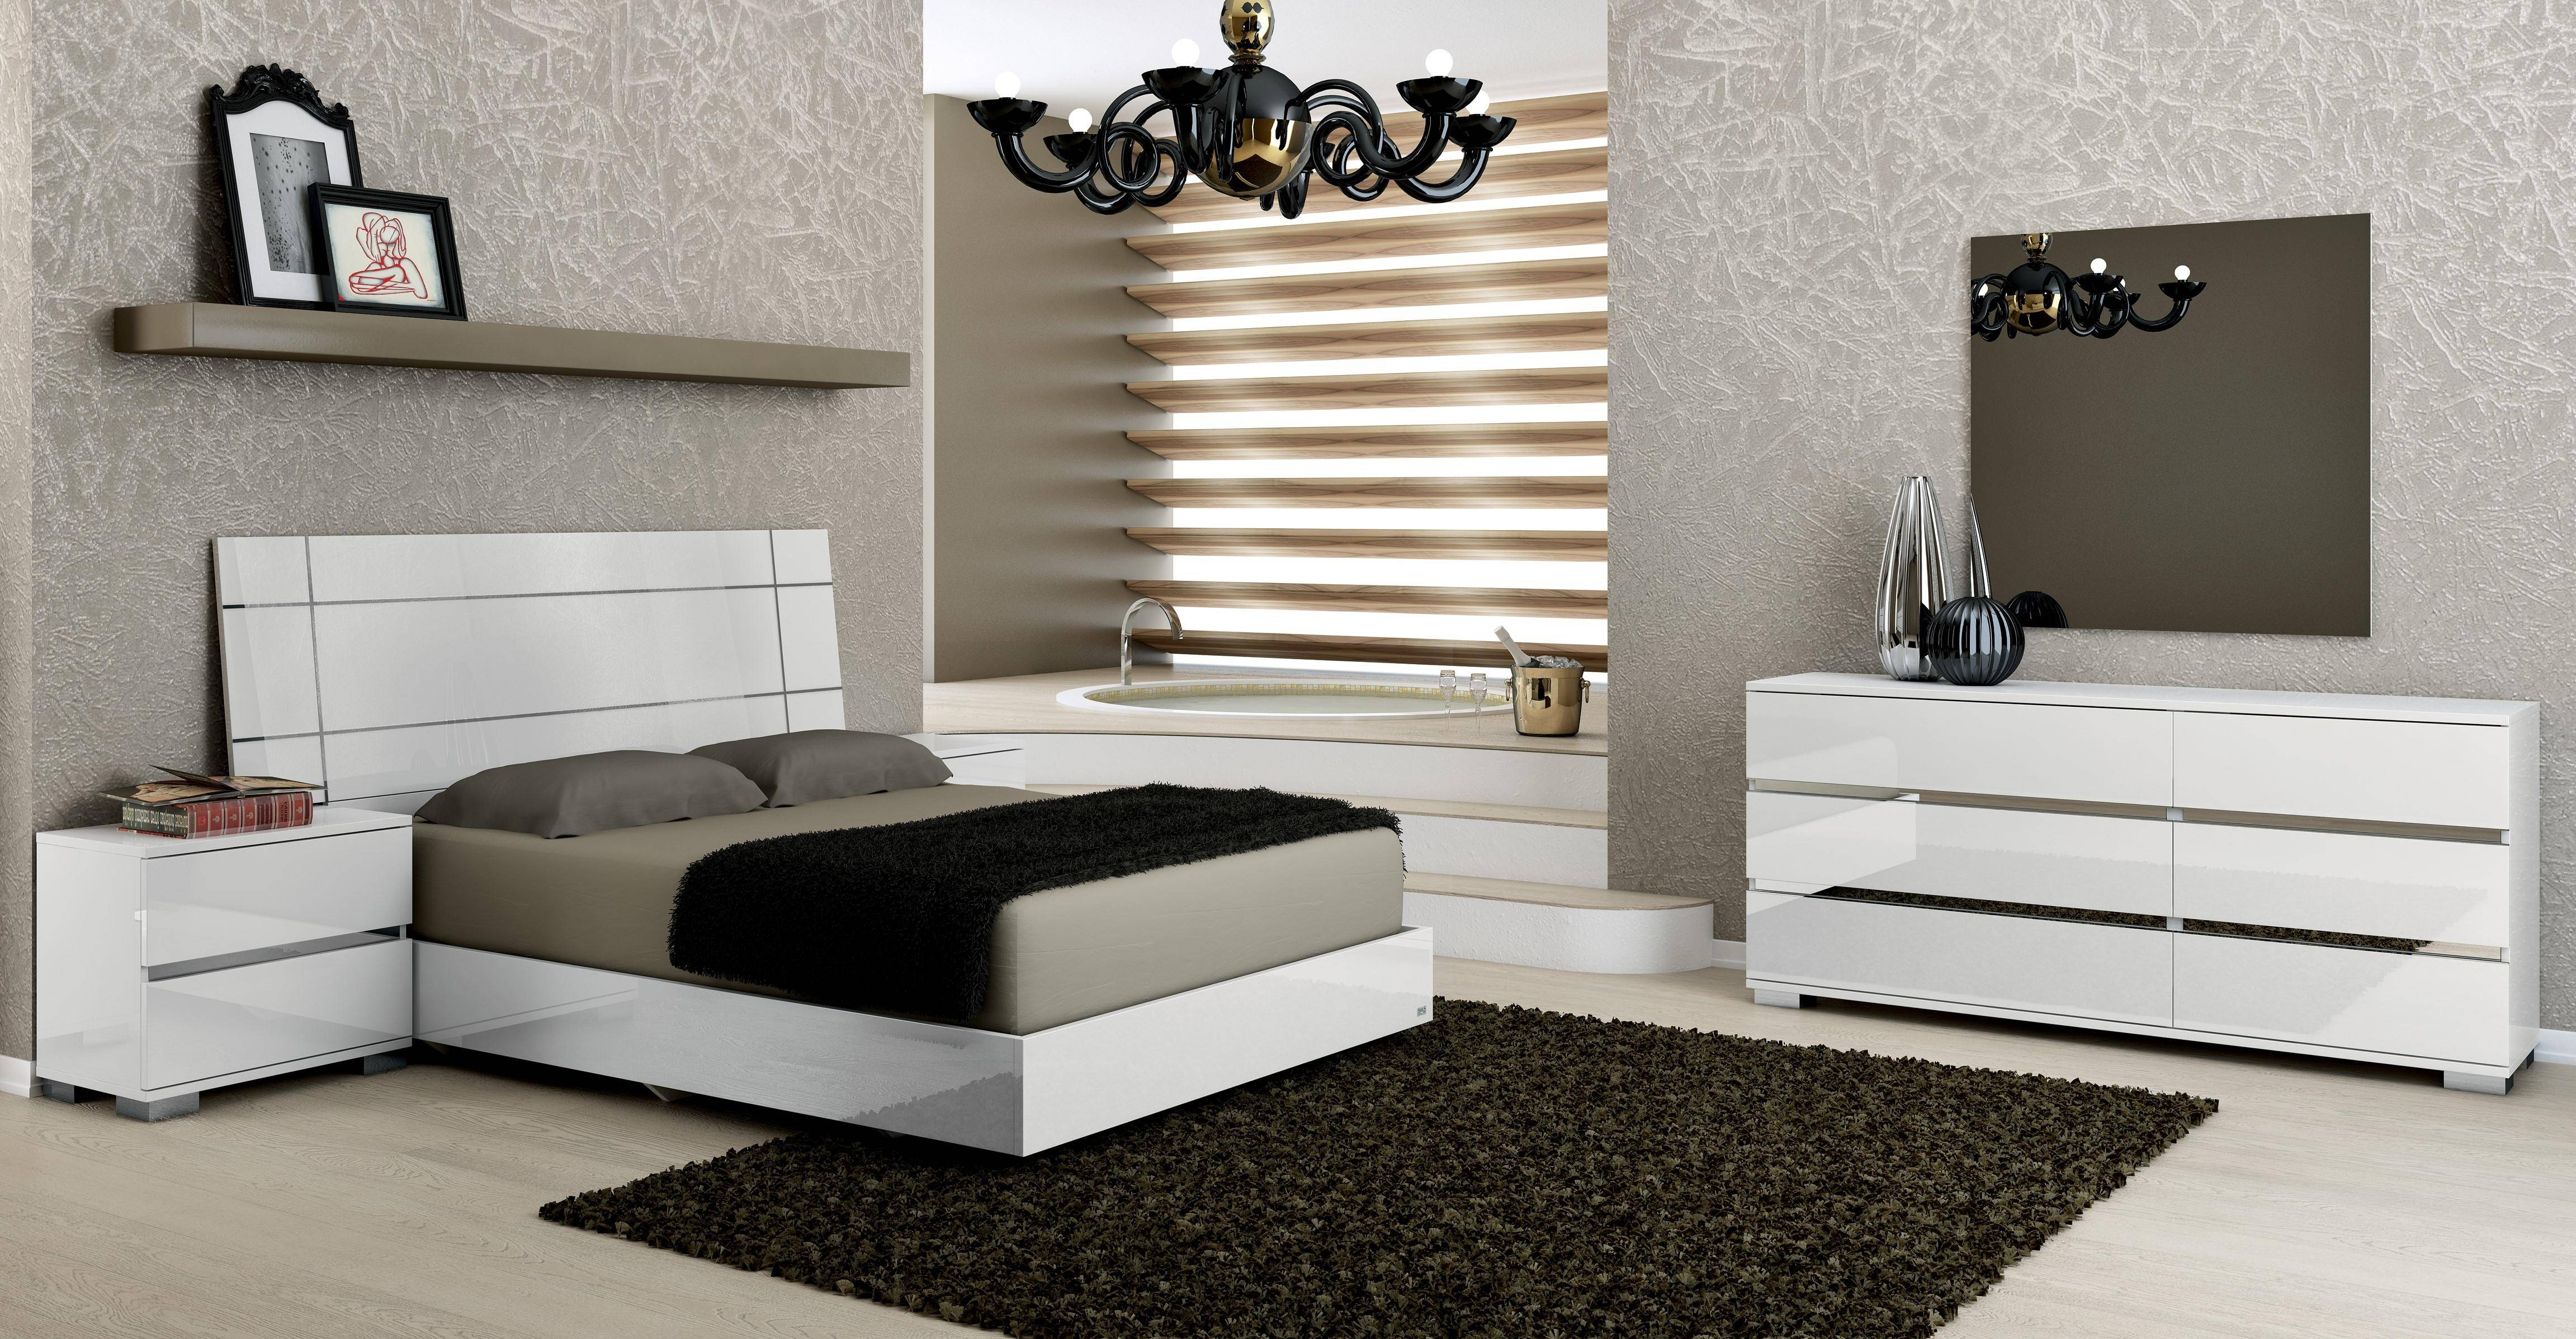 Super At Home Usa Dream White High Gloss Lacquer Queen Bedroom Set Bralicious Painted Fabric Chair Ideas Braliciousco